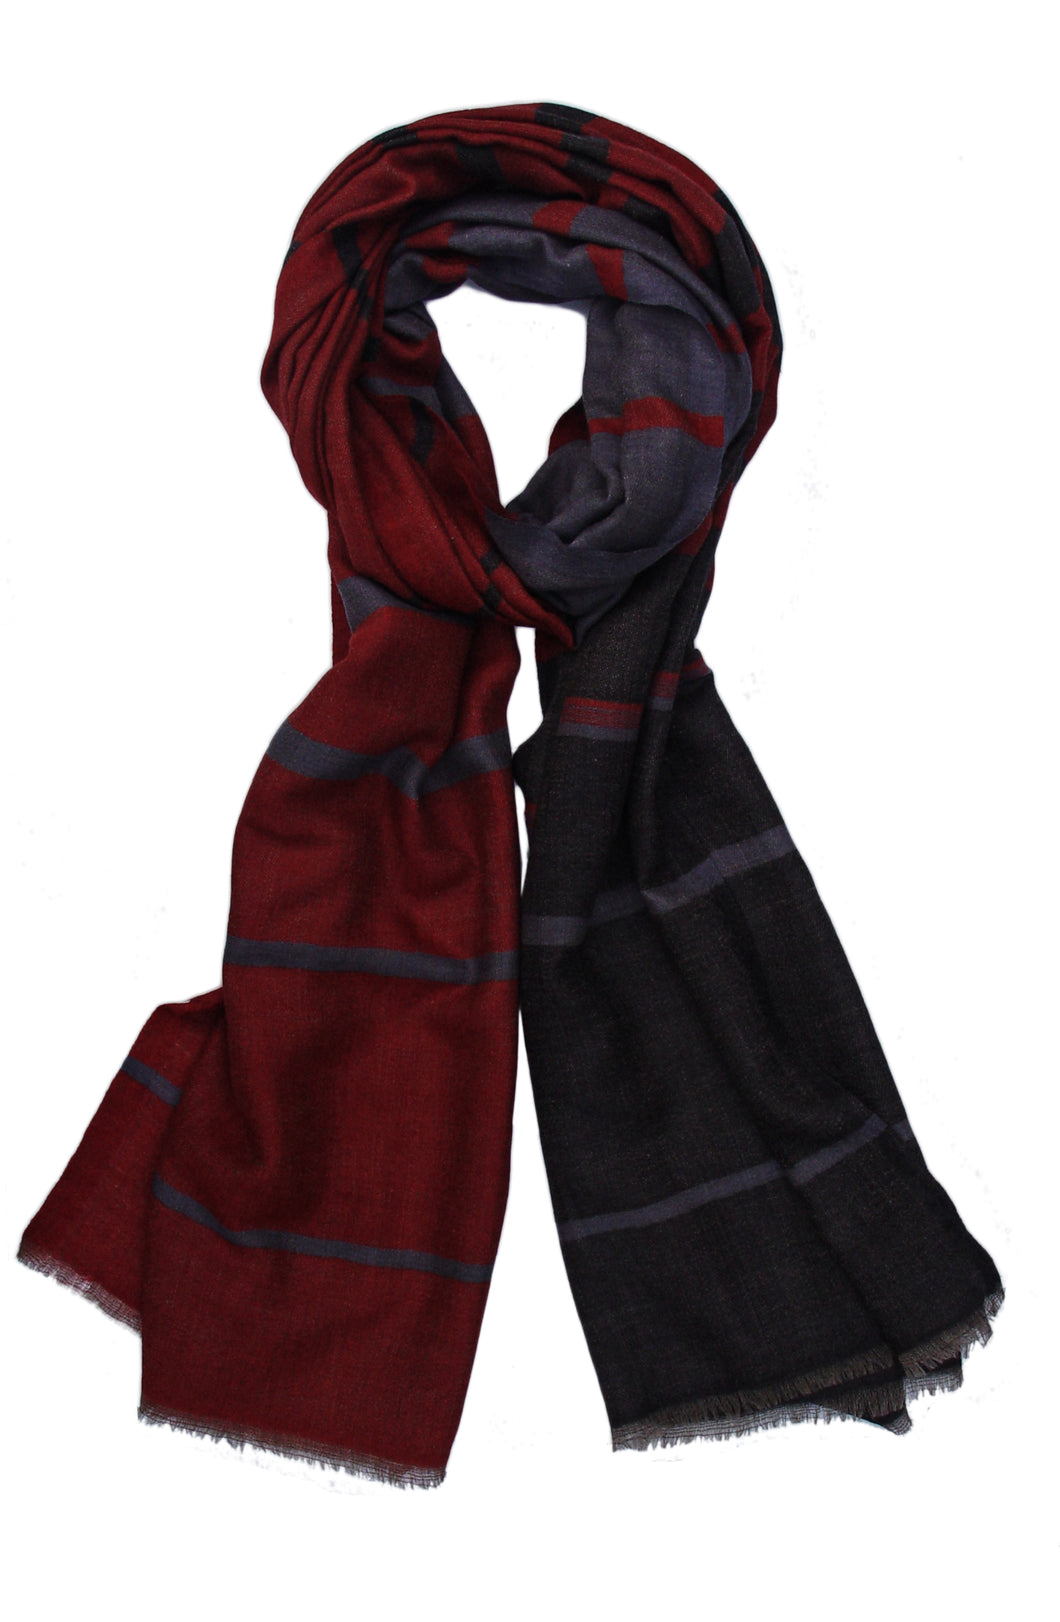 Pure Cashmere Scarf/Wrap in Stripes Pattern